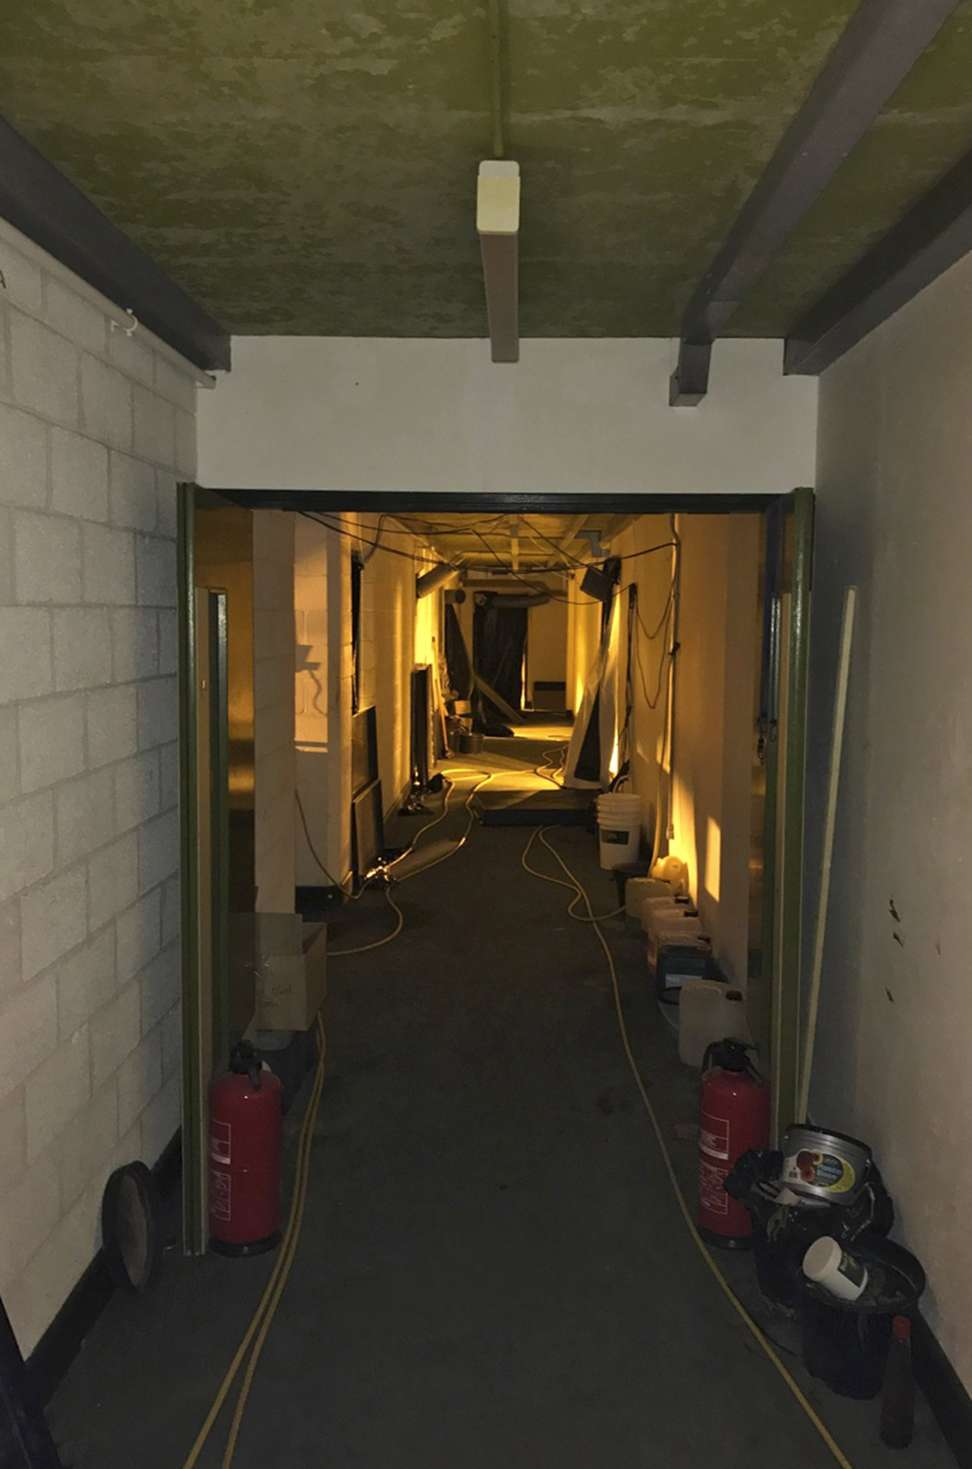 Huge cannabis farm in uk nuclear bunker was staffed by trafficked a view down a corridor to a cannabis plantation which was discovered in an underground nuclear bunker near swindon wiltshire britain photo epa sciox Choice Image